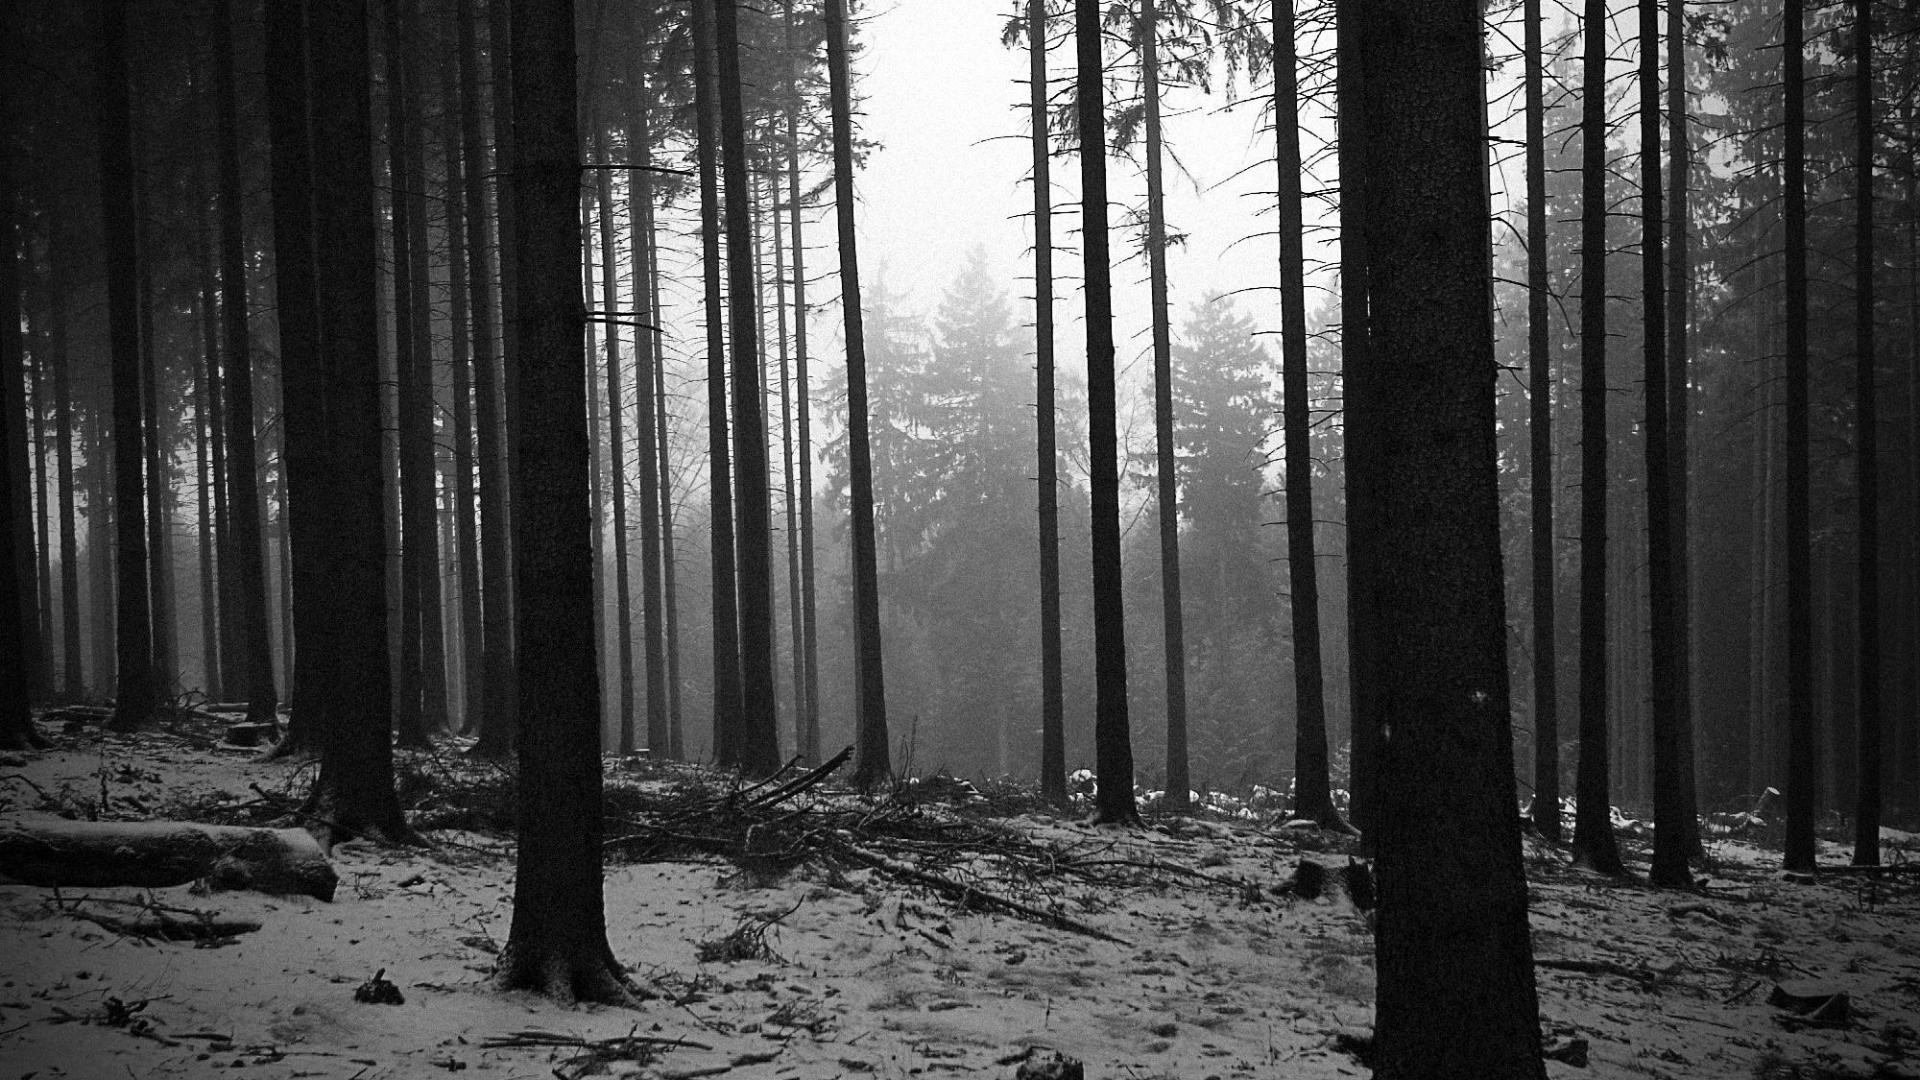 Black and white landscapes trees forest monochrome wallpaper | (39675)